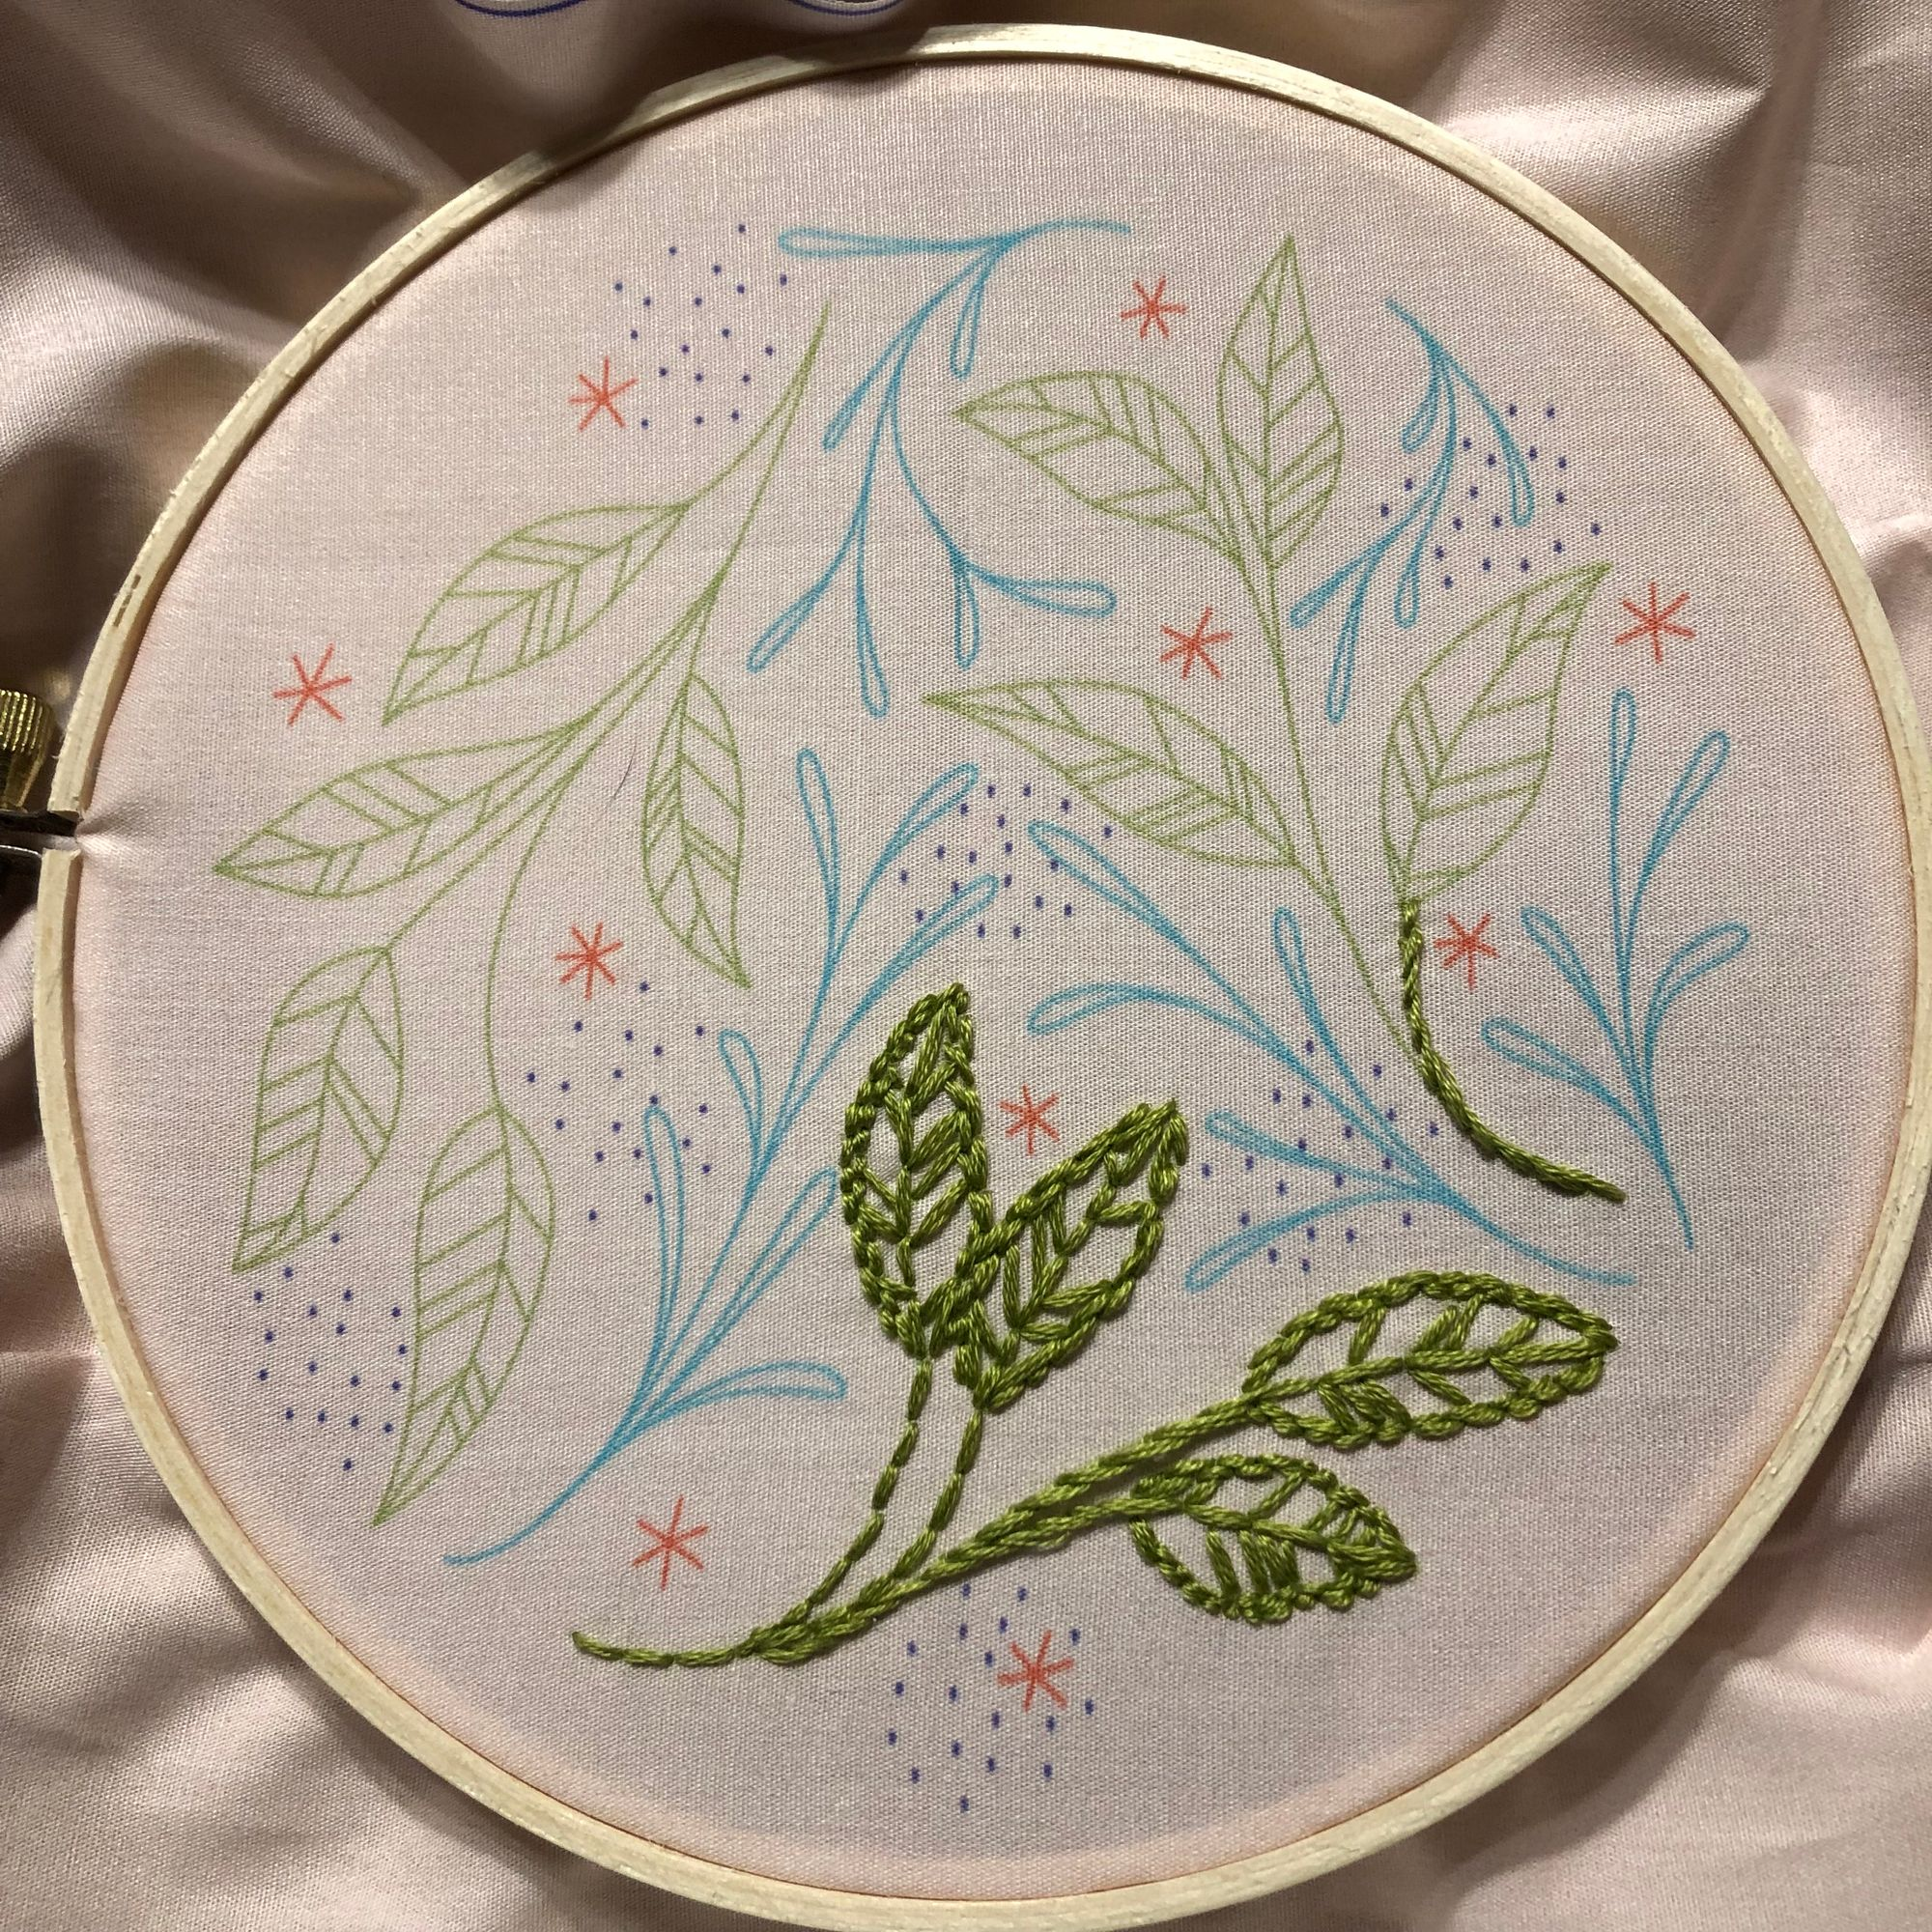 Close up on an embroidery hoop printed with a whimsical pattern of green leaves and blue vines, decorated here and there with dark blue dots and orange-red seven-pointed stars. Some of the leaves -- about a third -- have been embroidered with dark green thread.